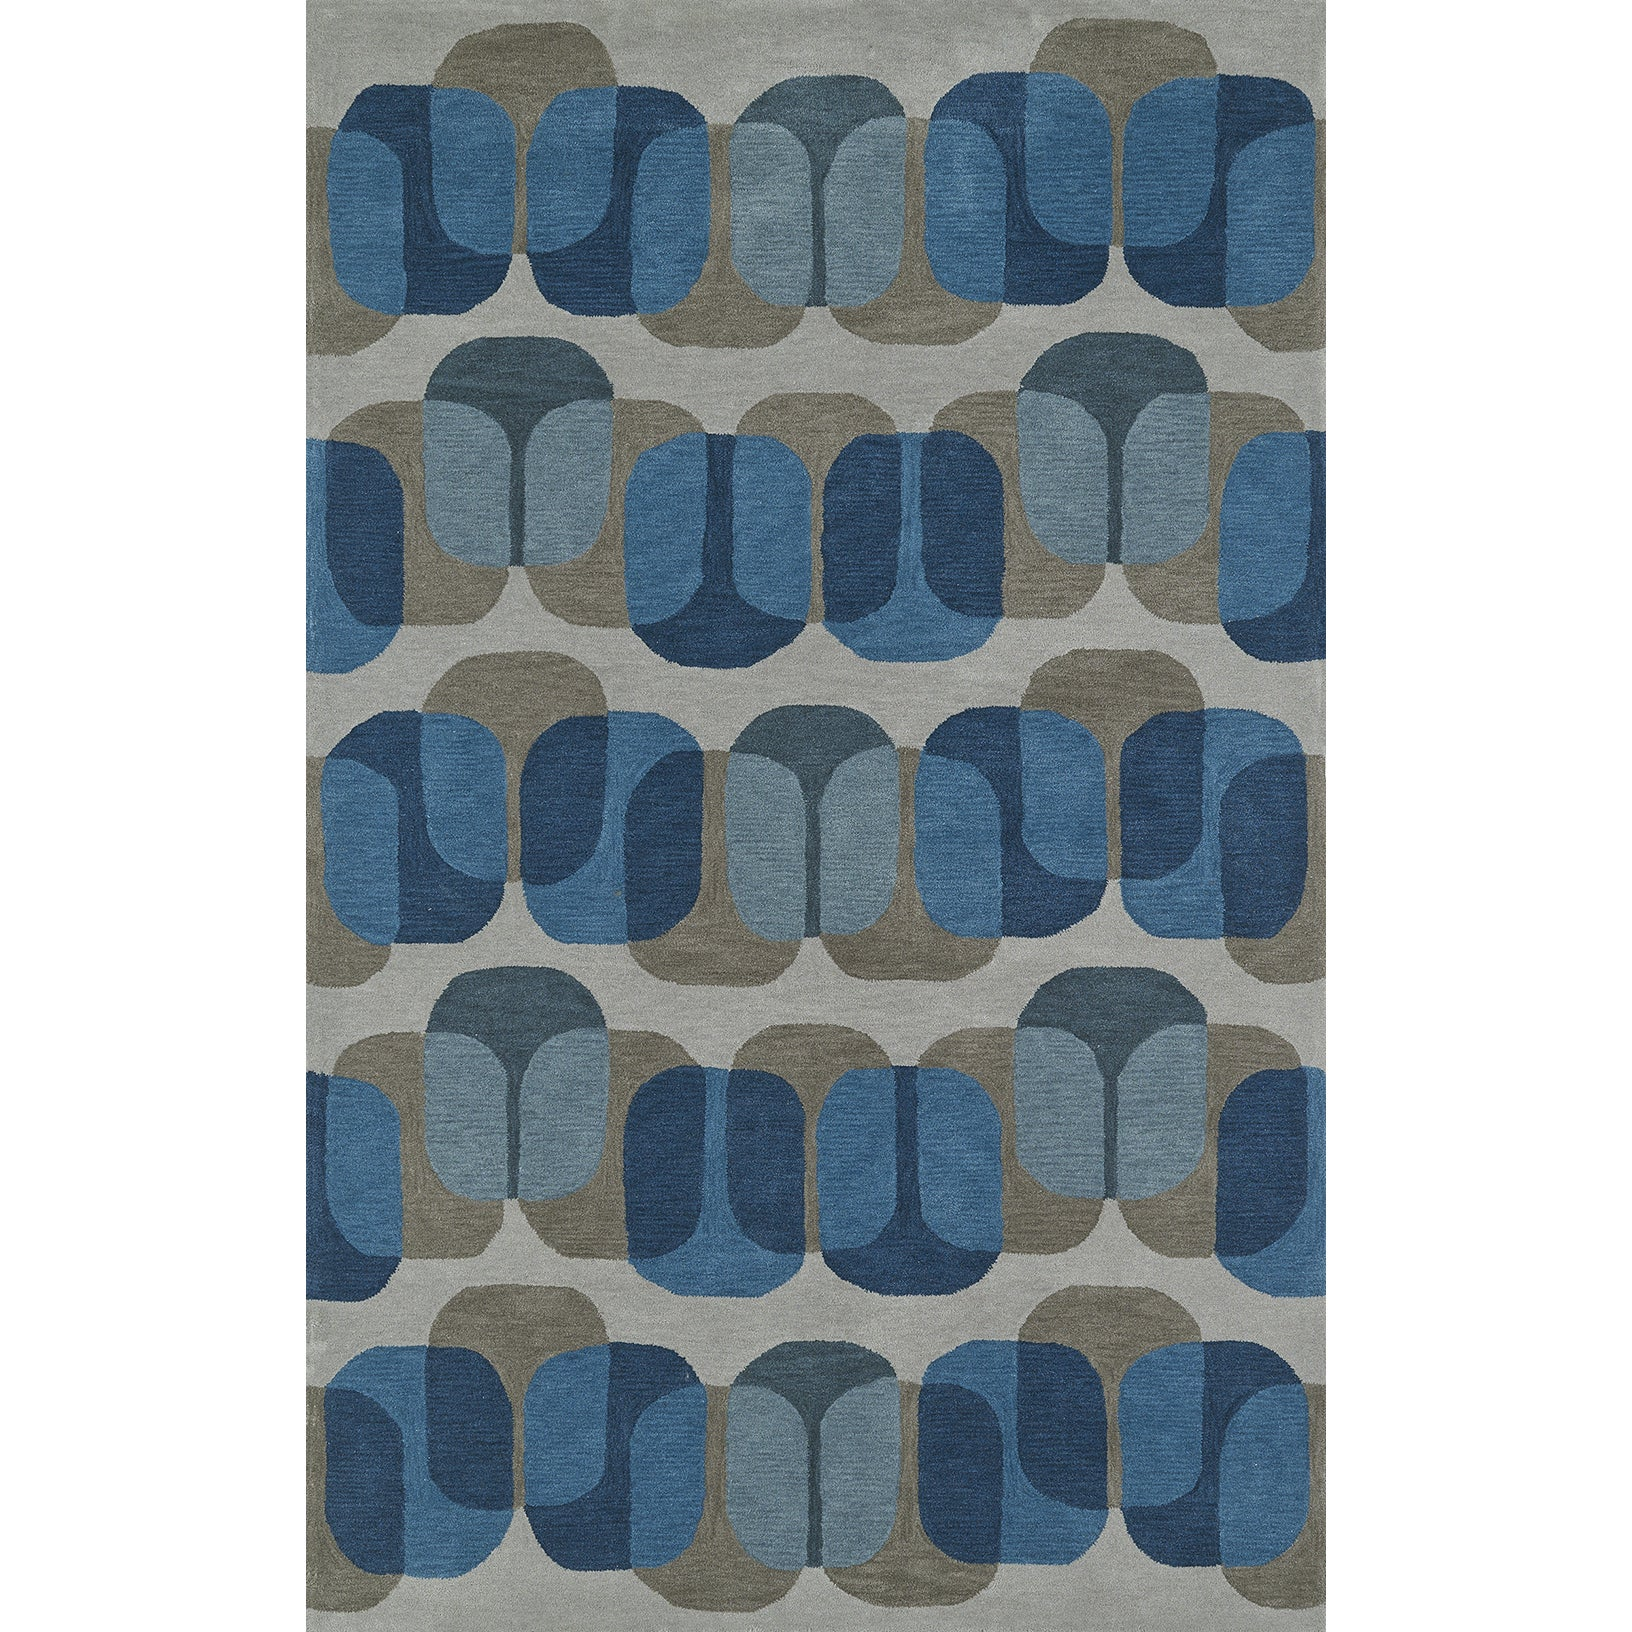 and decor patina vie tapis by vintage illume area products gray s karastan rugs rug incredible